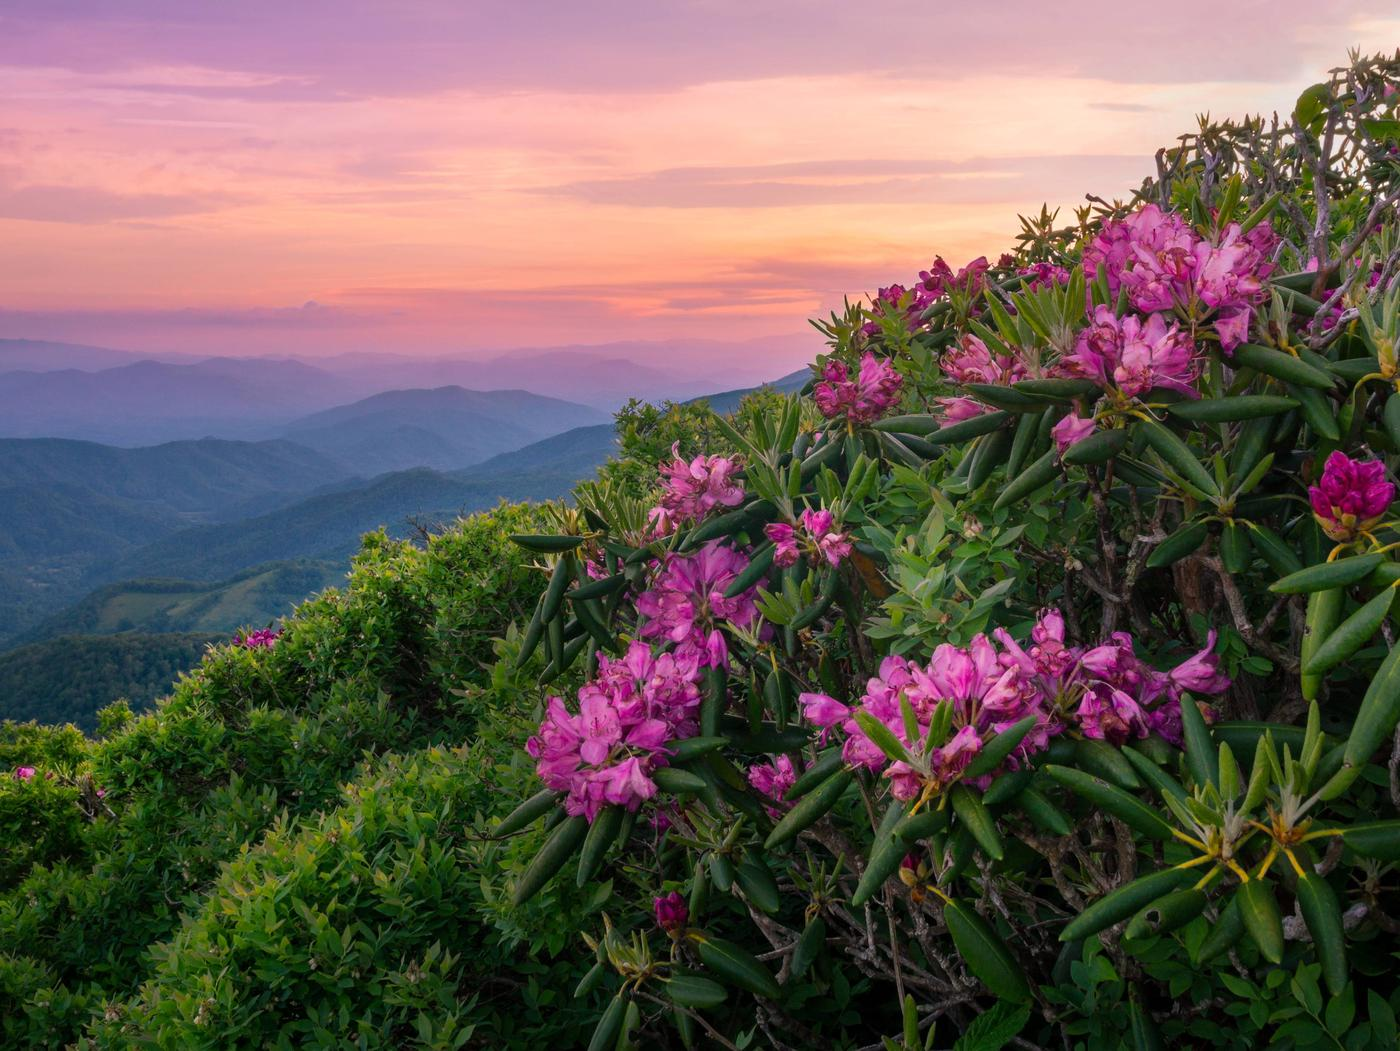 Rhododendrons in foreground on mountainside, Pisgah National ForestRhododendrons, Pisgah National Forest